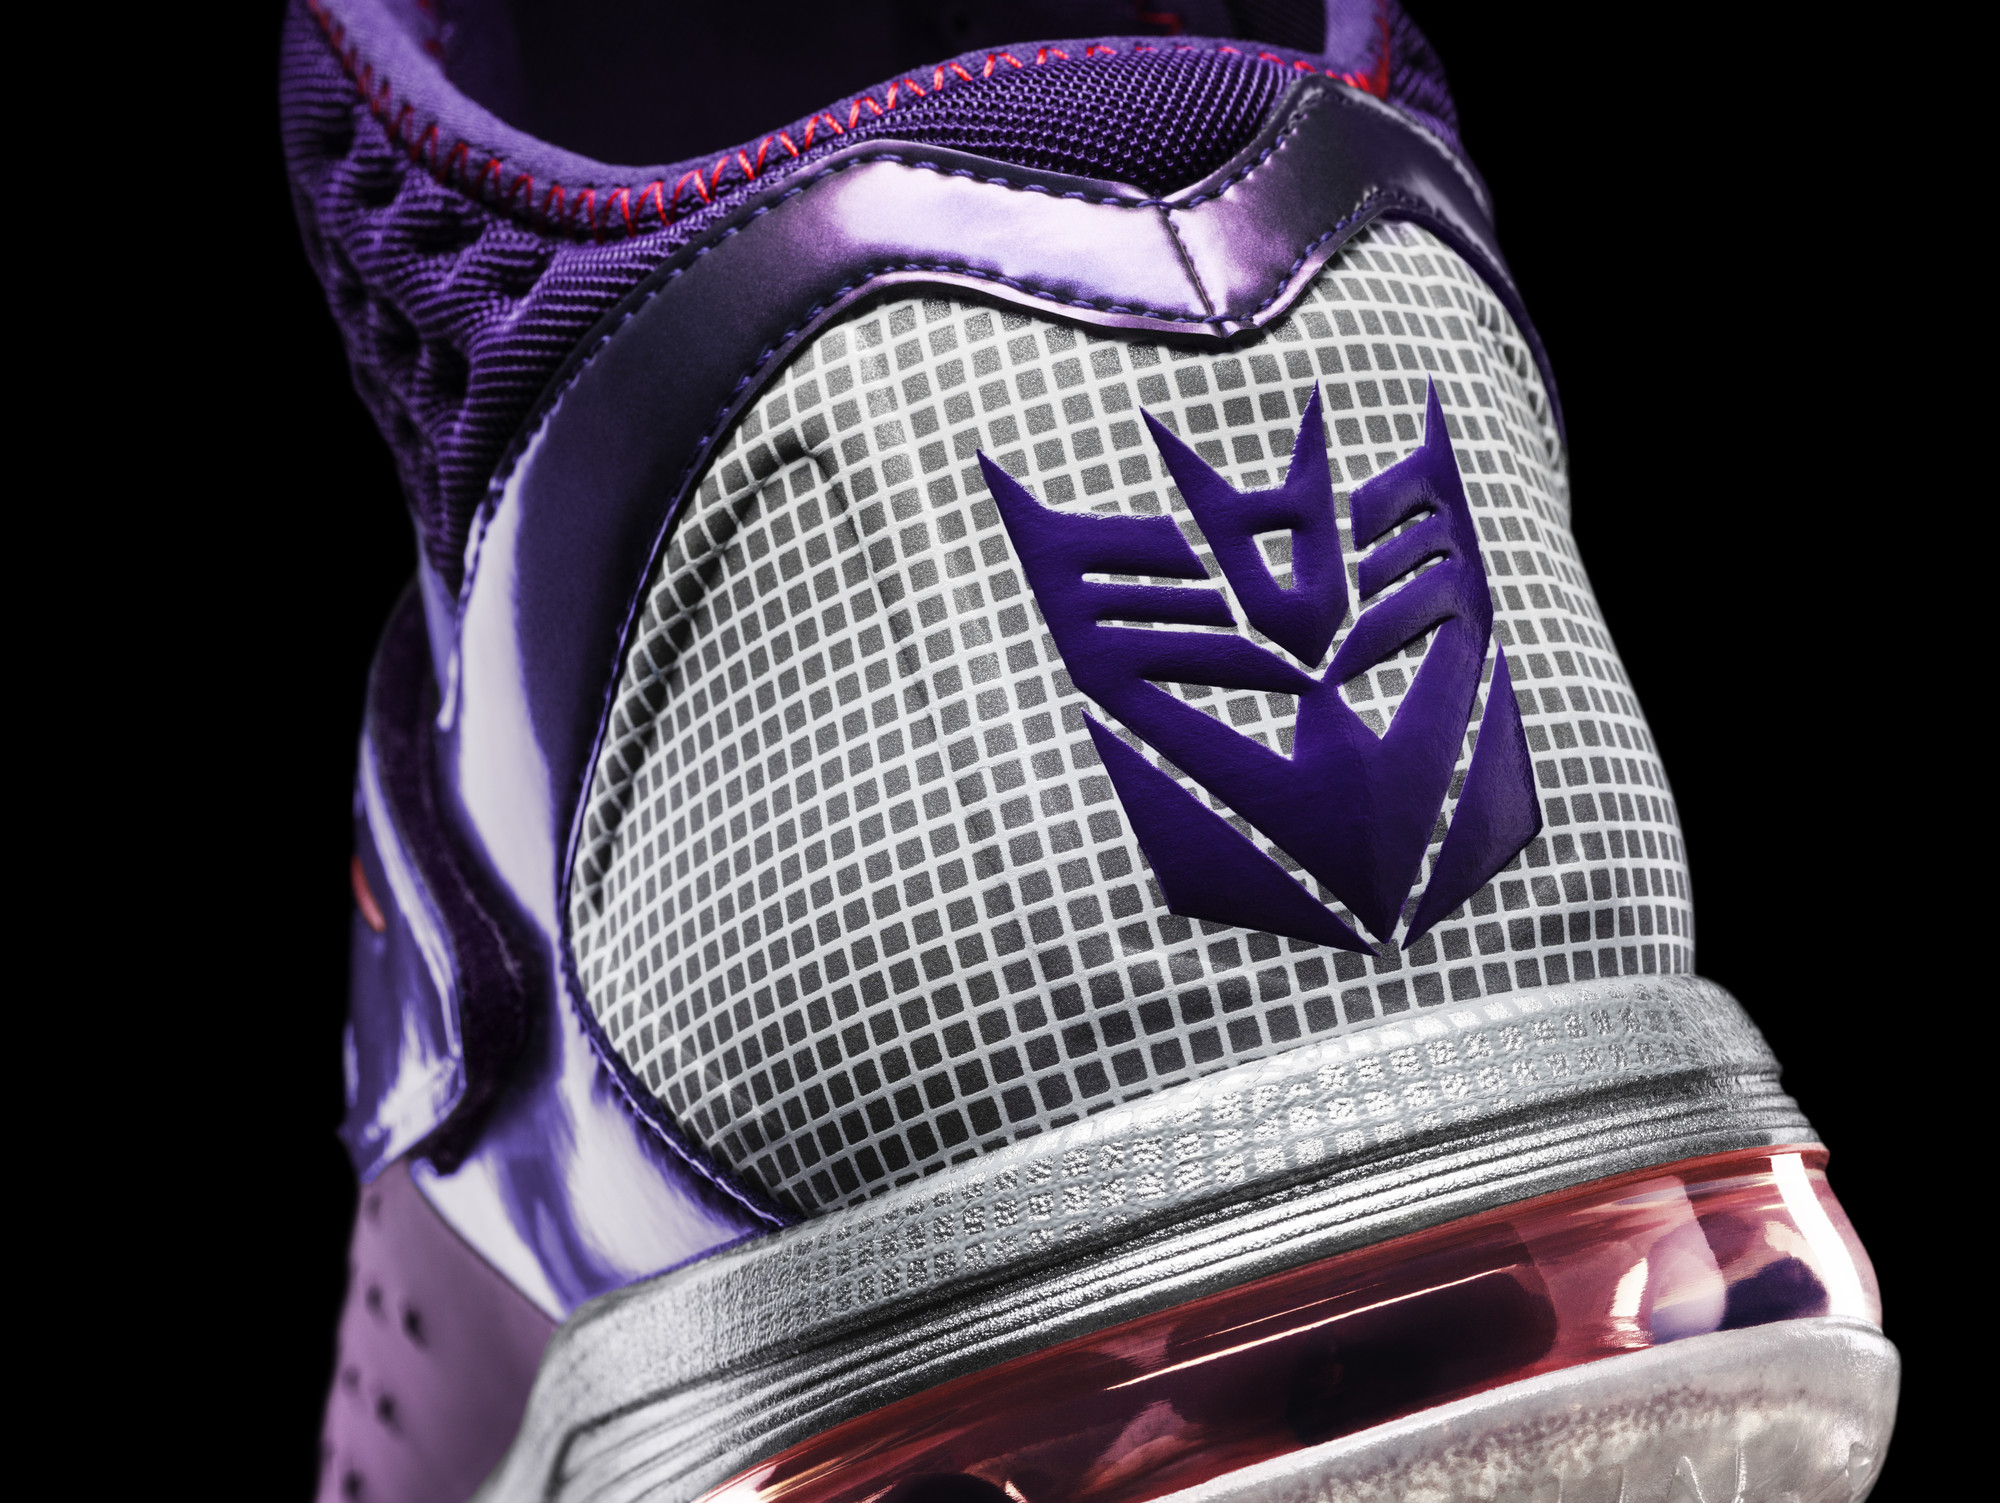 The Decepticon logo appears on the Megatron Trainer Max